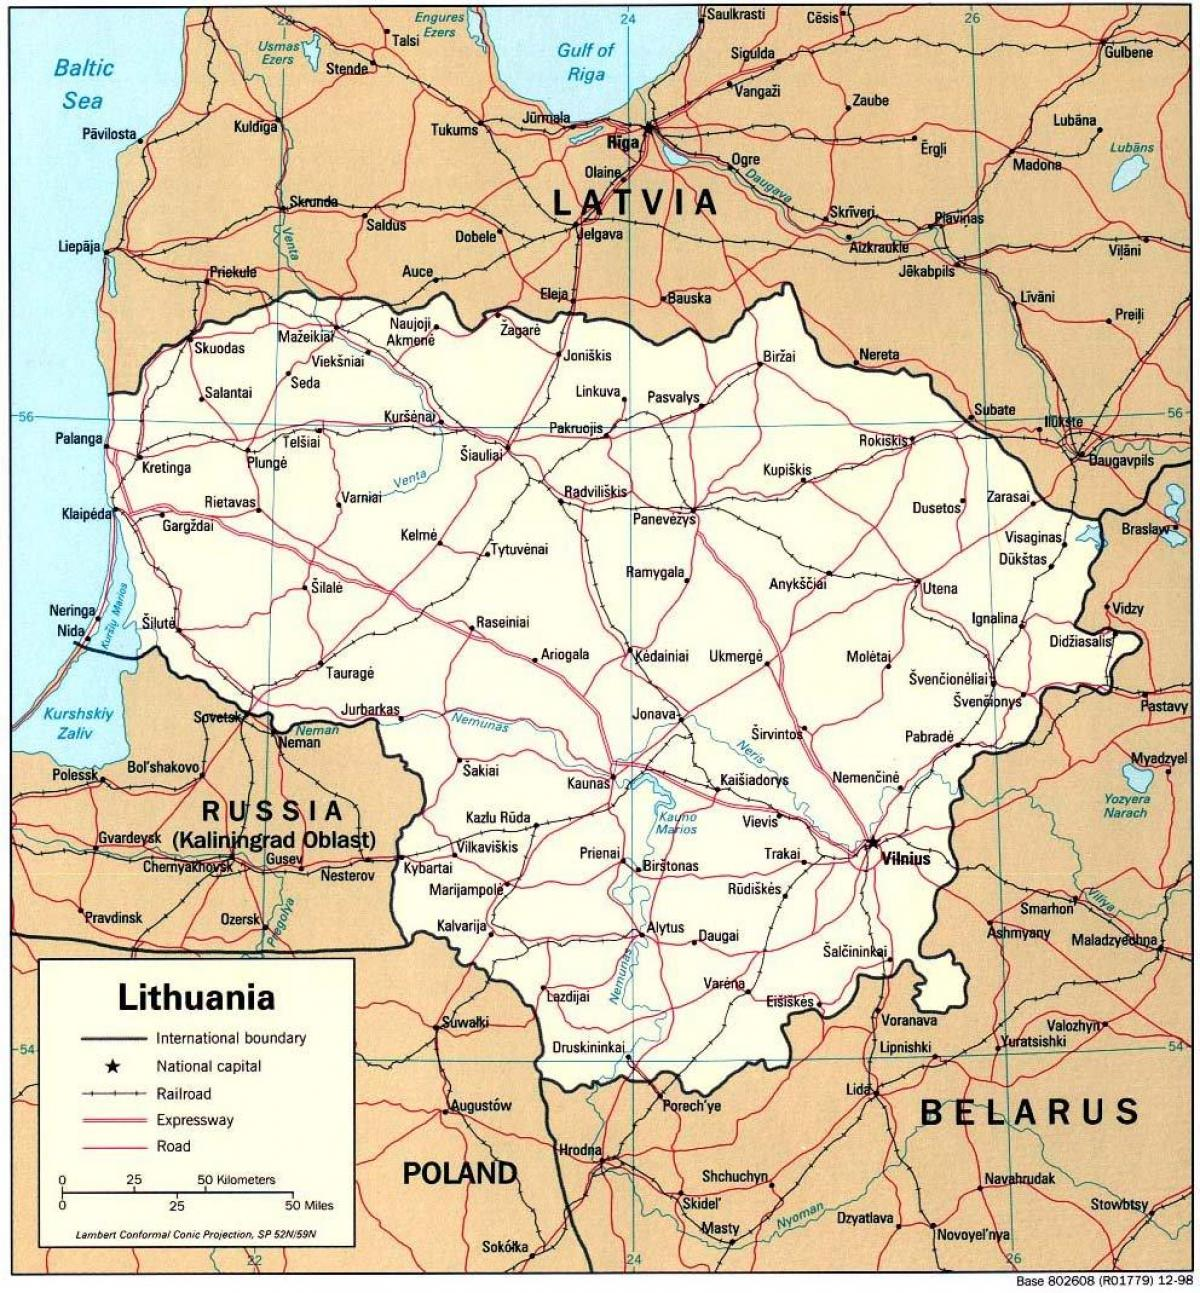 map showing Lithuania